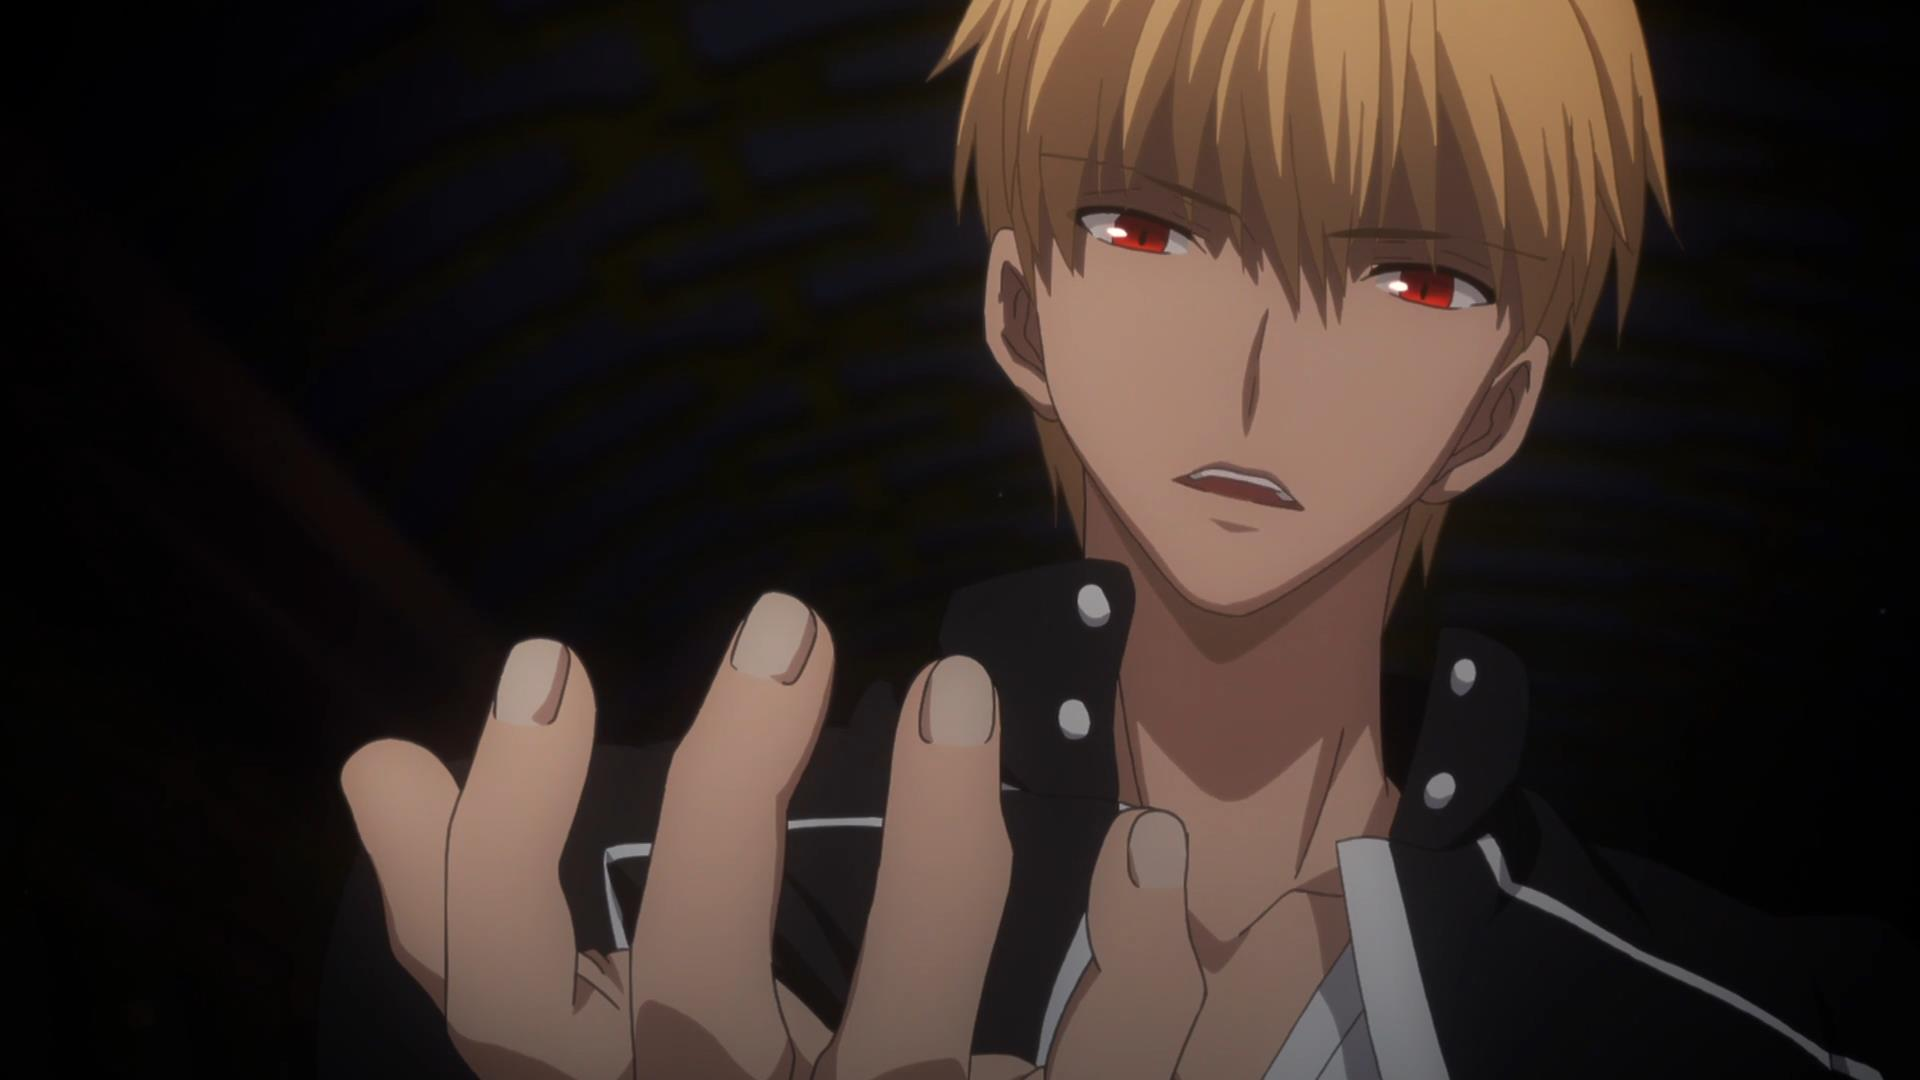 Fate/stay night: Unlimited Blade Works - 21